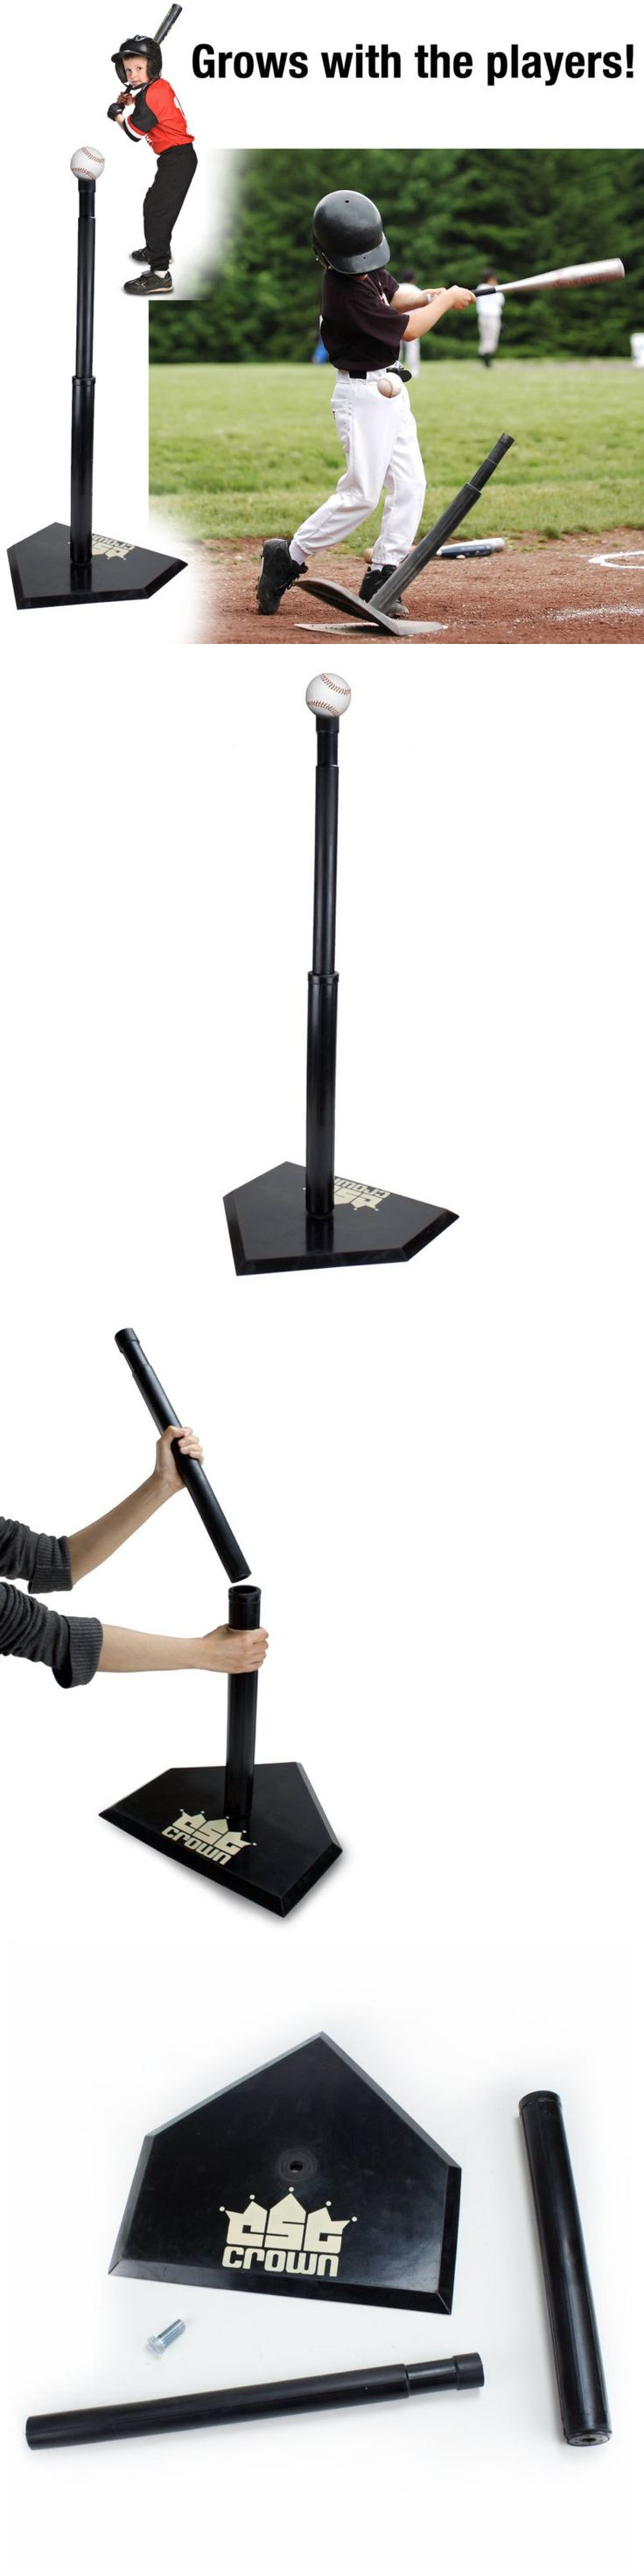 Batting Tees 108139: Heavy Duty Adjustable Height Baseball And Softball Batting Tee Training Stand New -> BUY IT NOW ONLY: $49.58 on eBay!